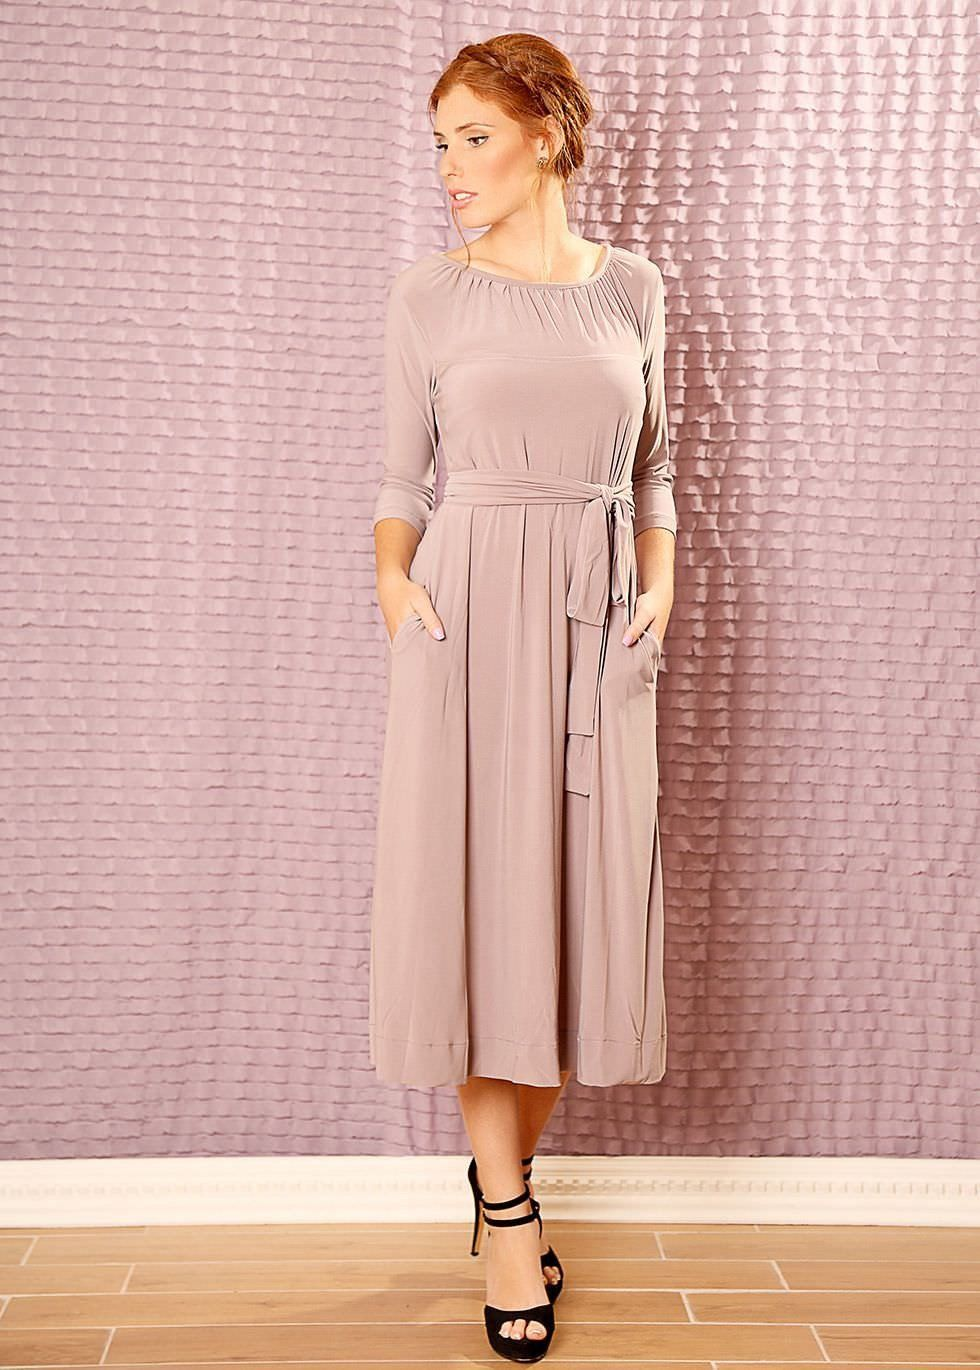 Custom made bridesmaids midi dress with sleeves 5 easy steps to 5 easy steps to design your perfect modest chic bridesmaids dresses please note these dresses take weeks to arrive as they are custom made lets get ombrellifo Images